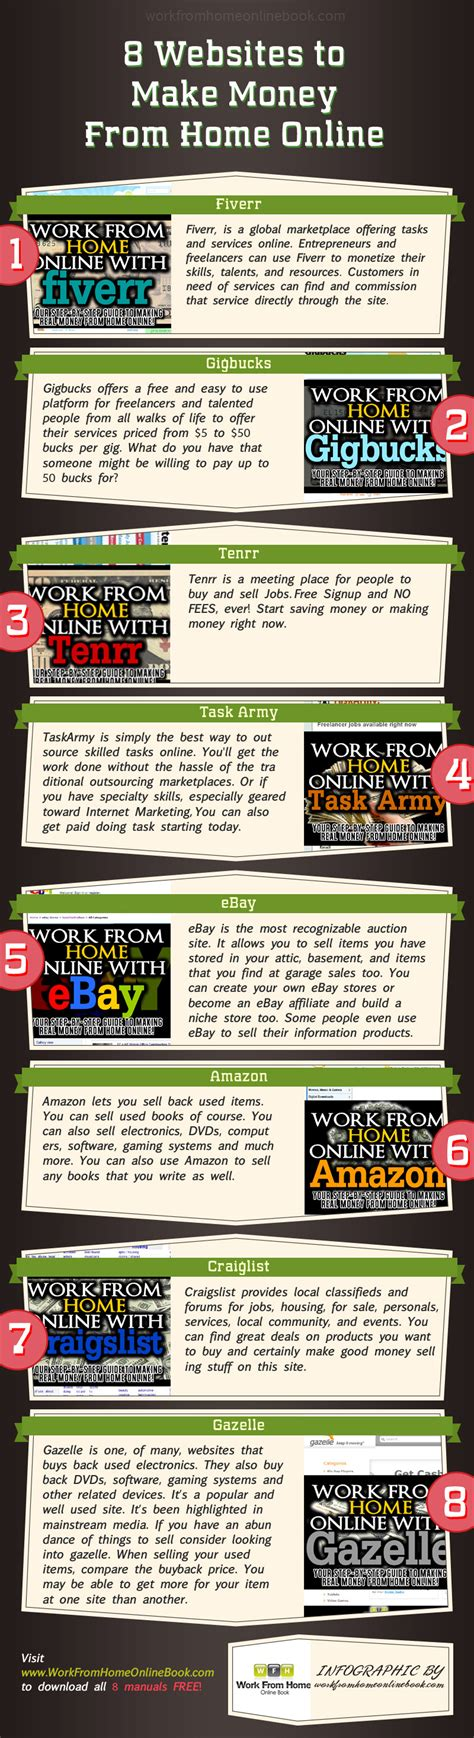 Money Making Online Sites - 8 websites make money from home online infographic